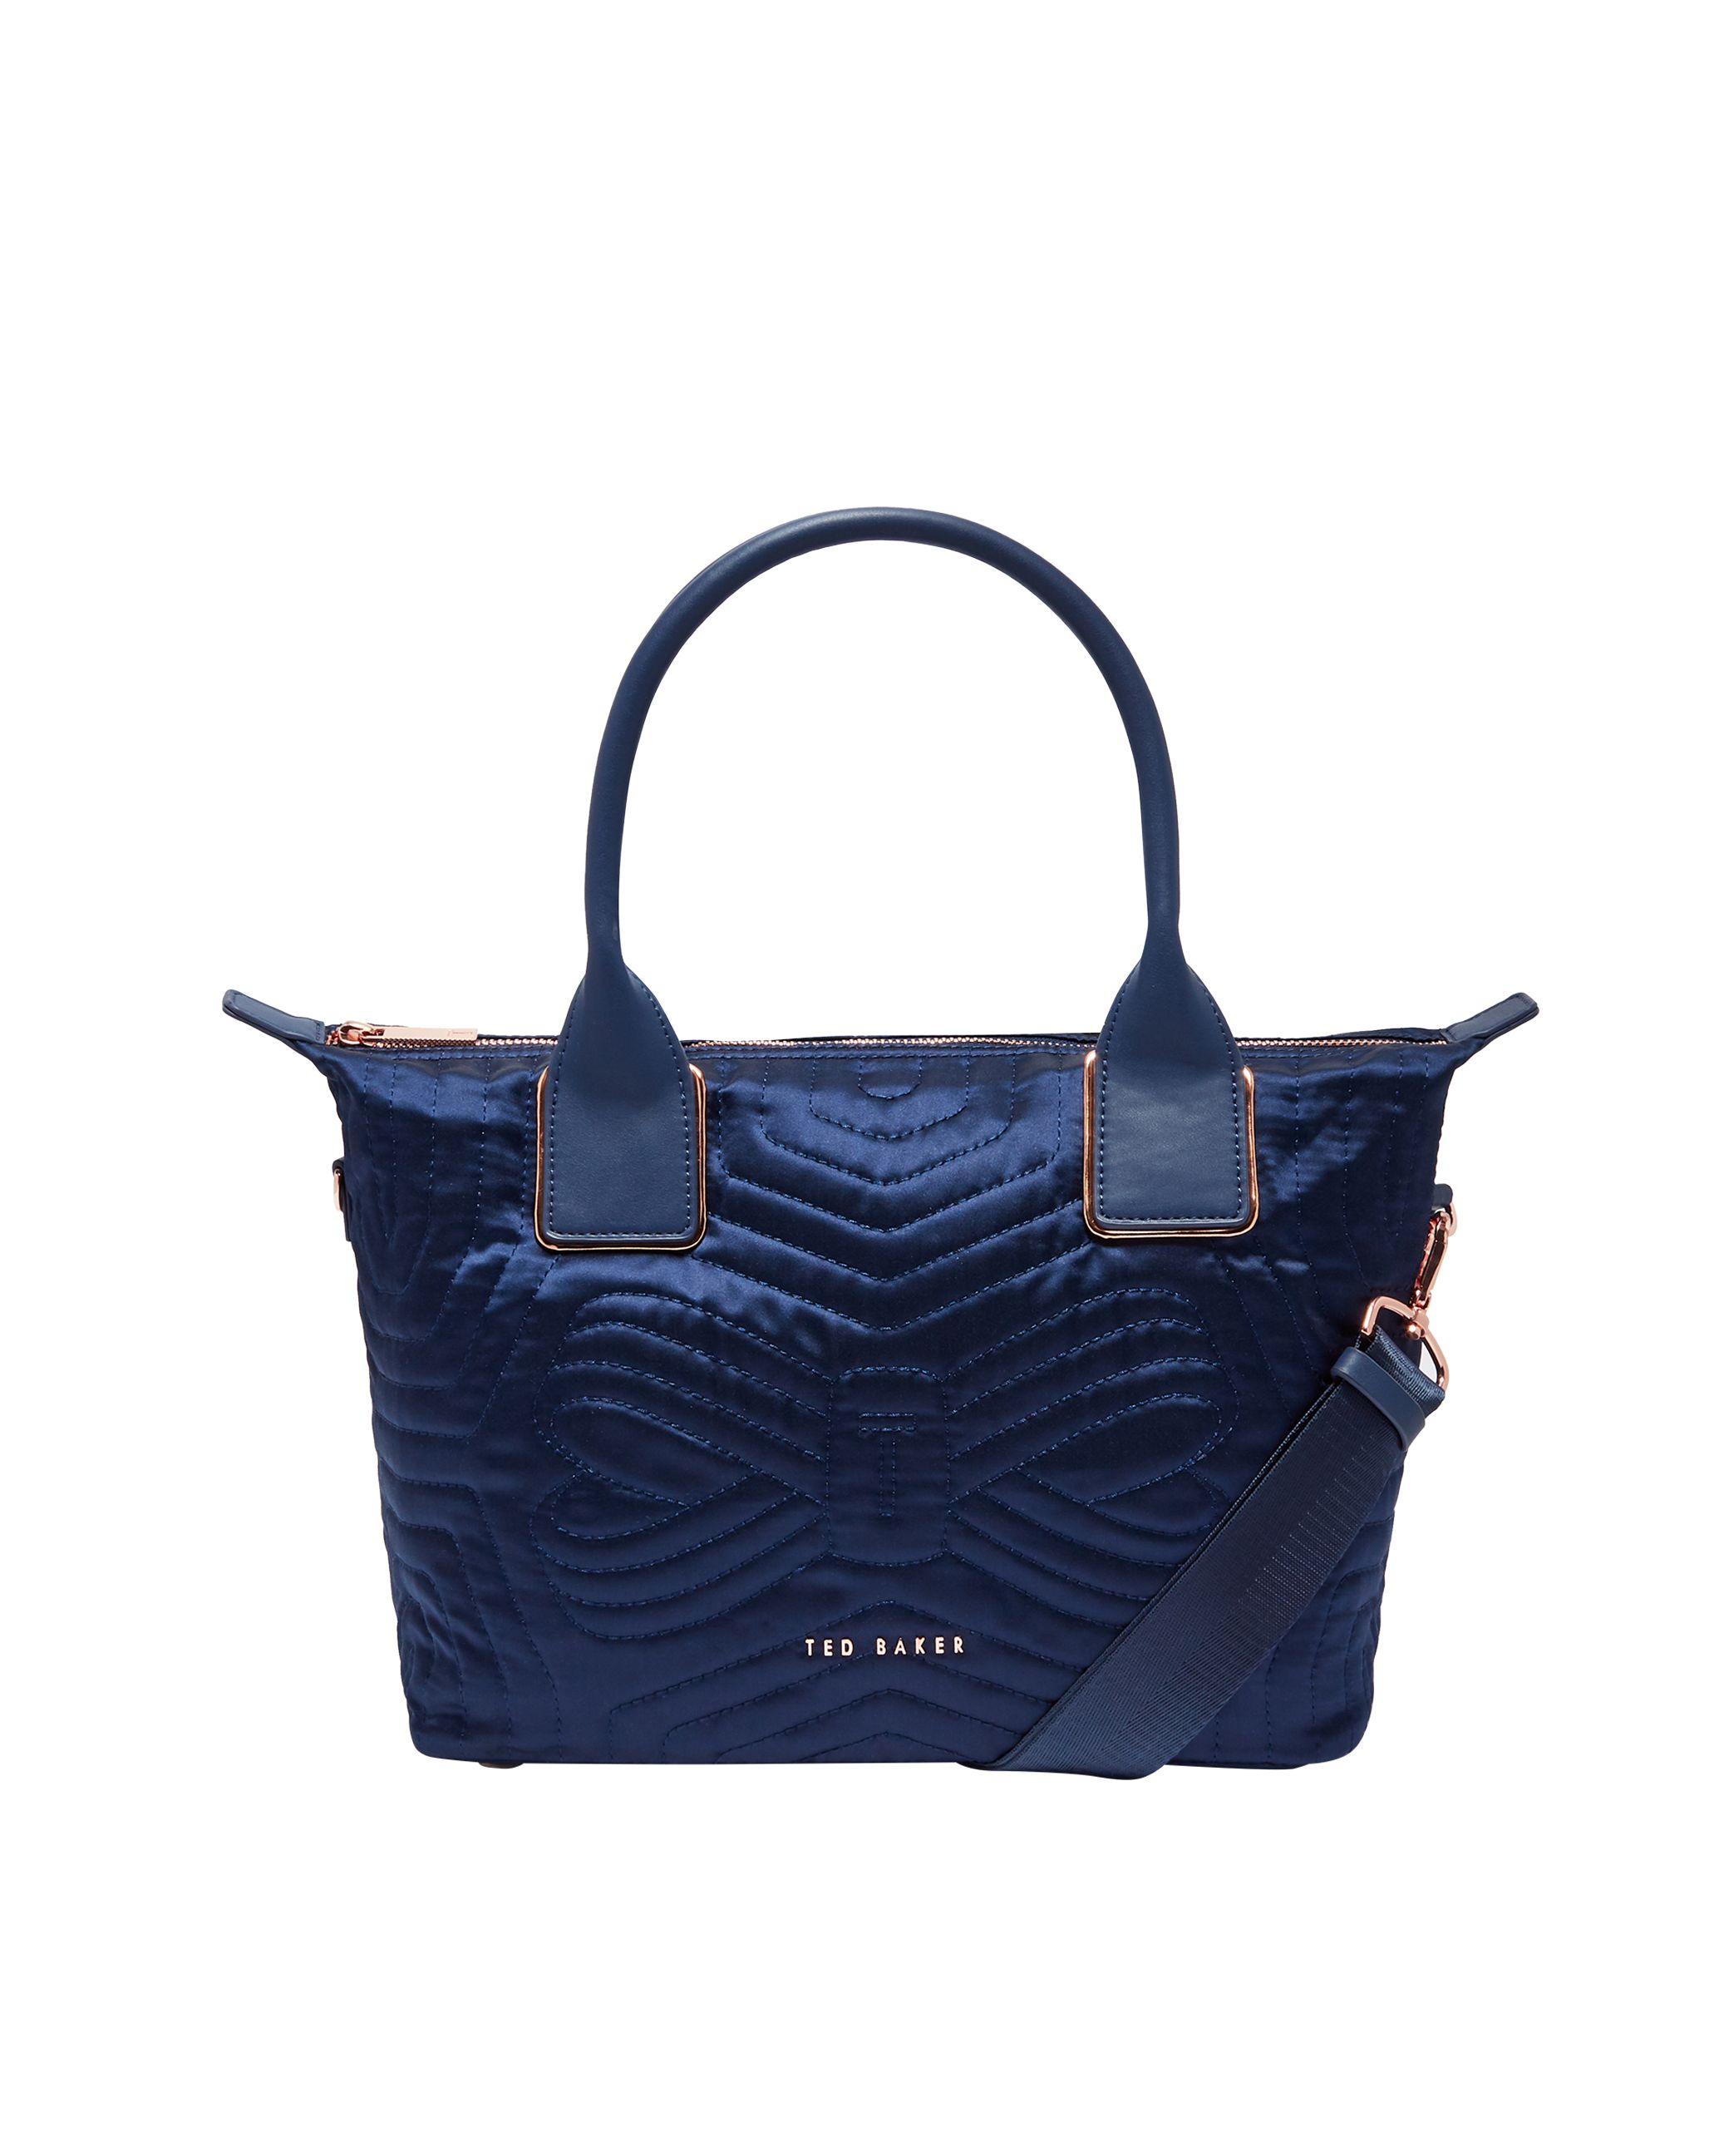 Ted Baker Akebia Quilted Bow Small Nylon Tote Bag, Blue